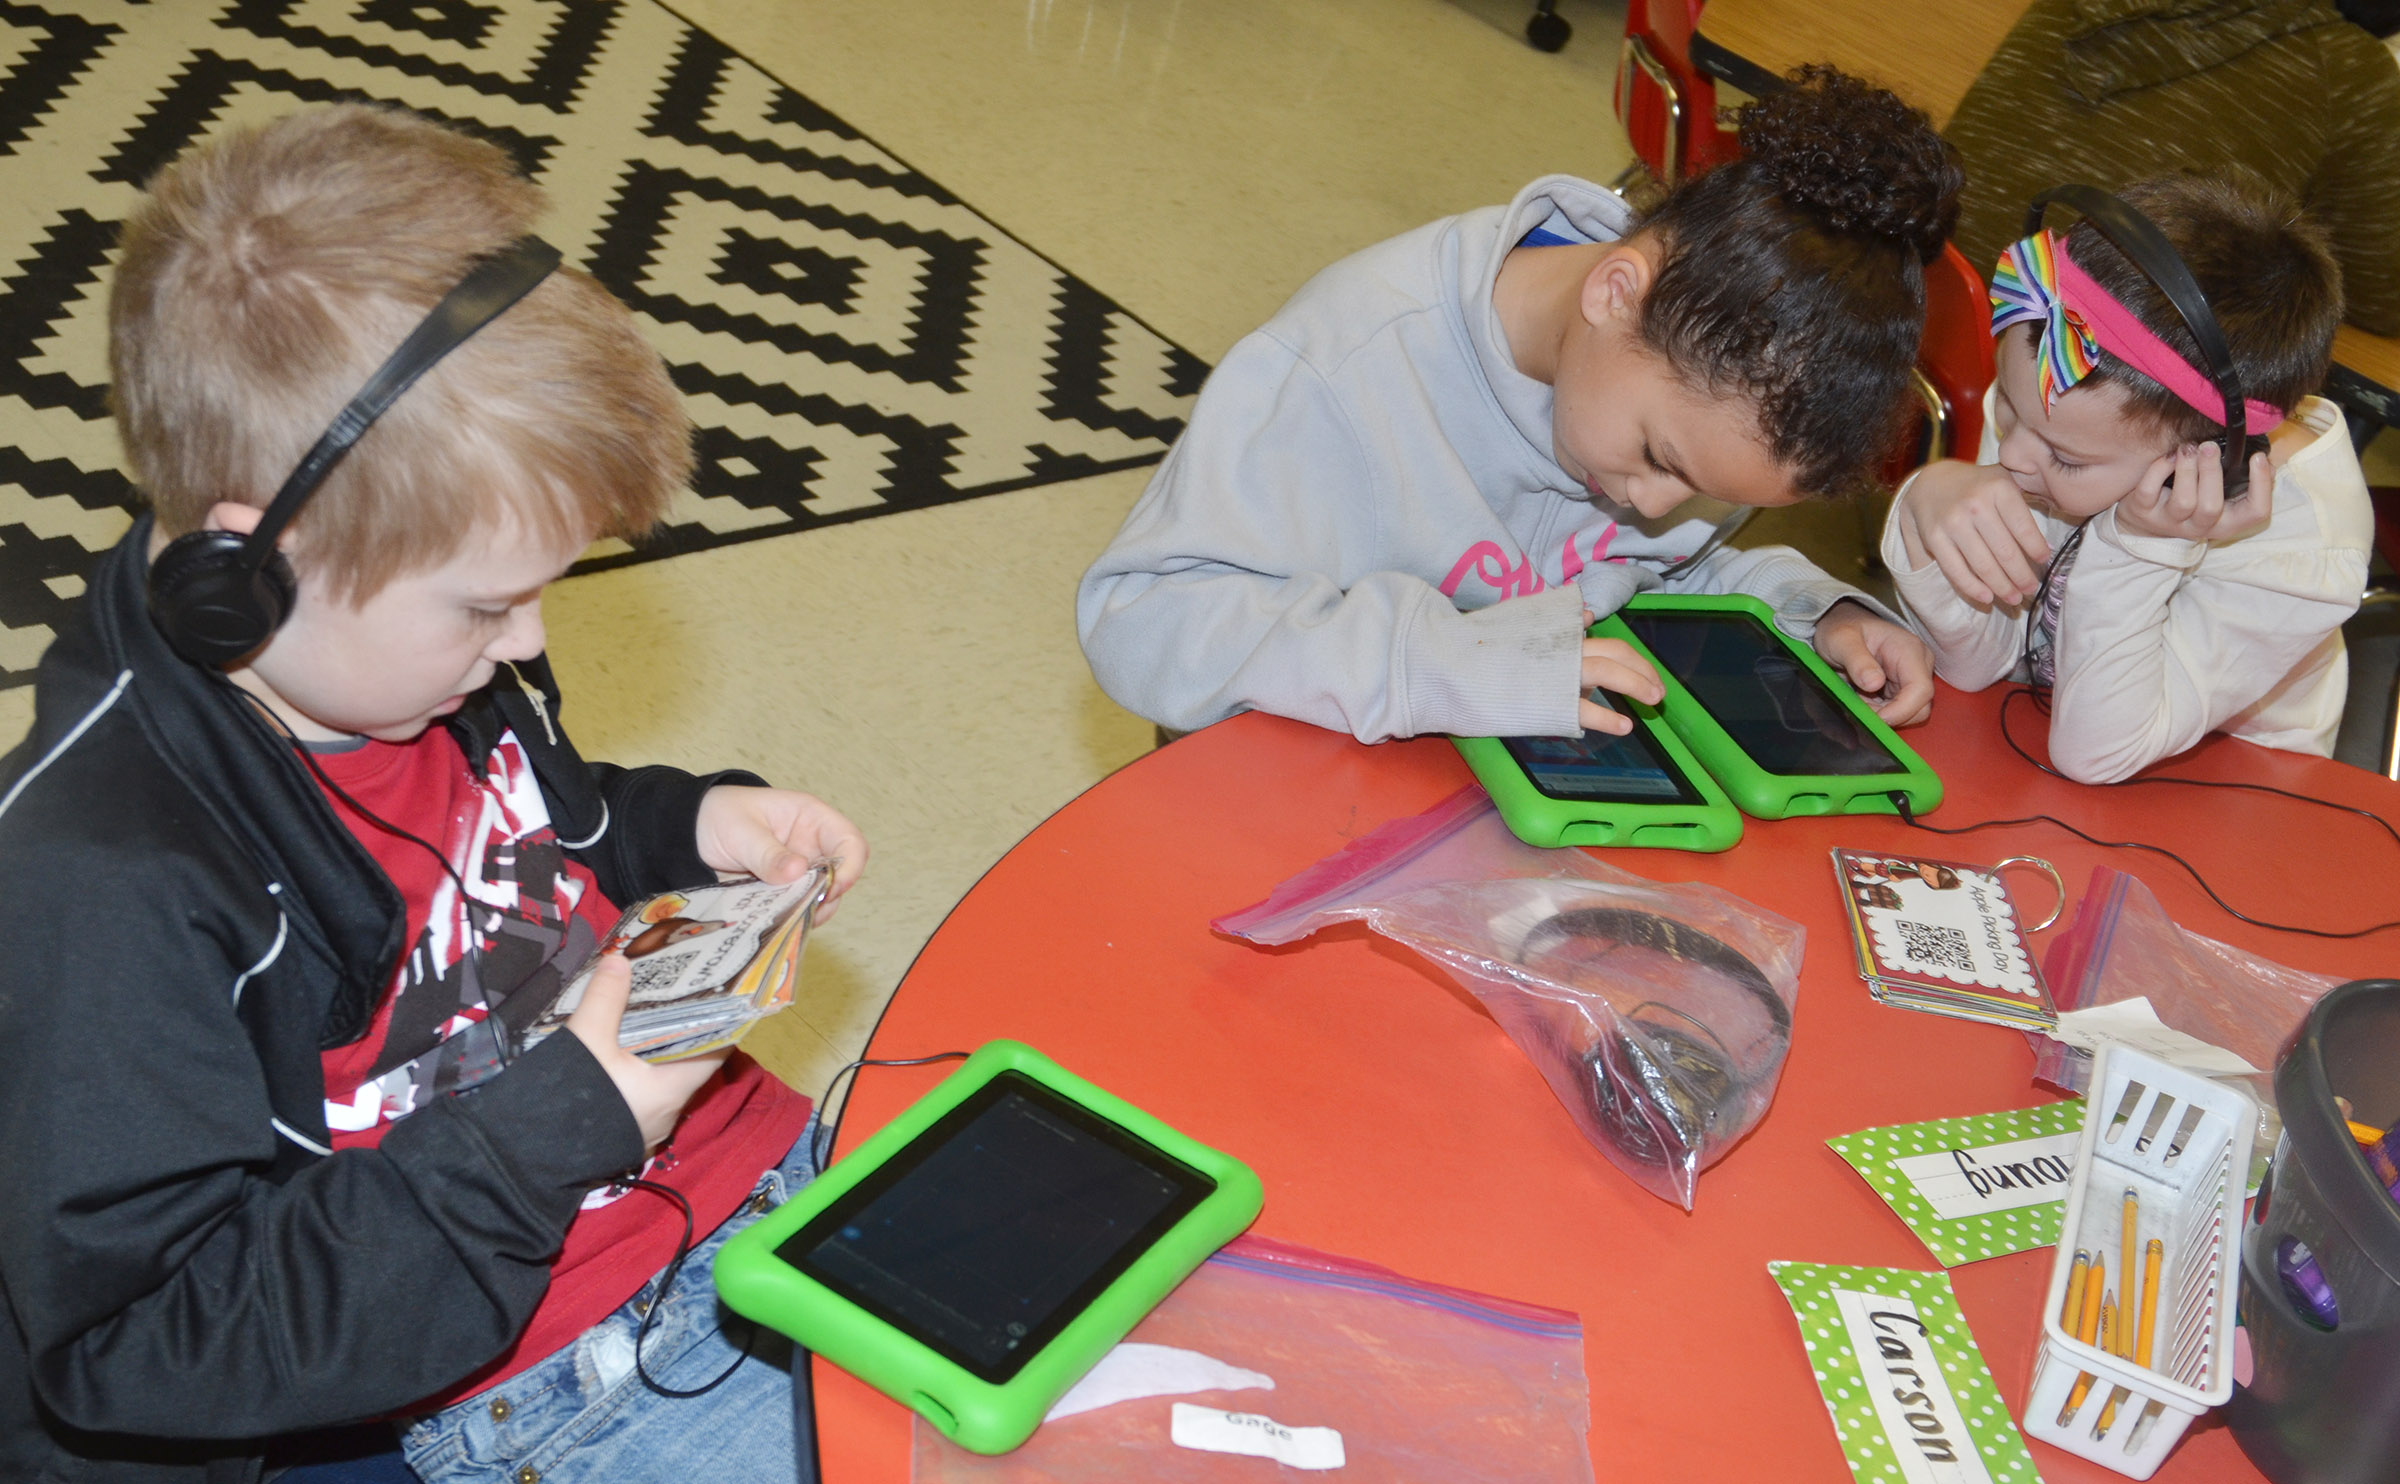 CES first-grader Gage Henderson, at left, reads with flashcards as his classmates Aleeya Spaulding and Madison Haywood read together on a tablet.